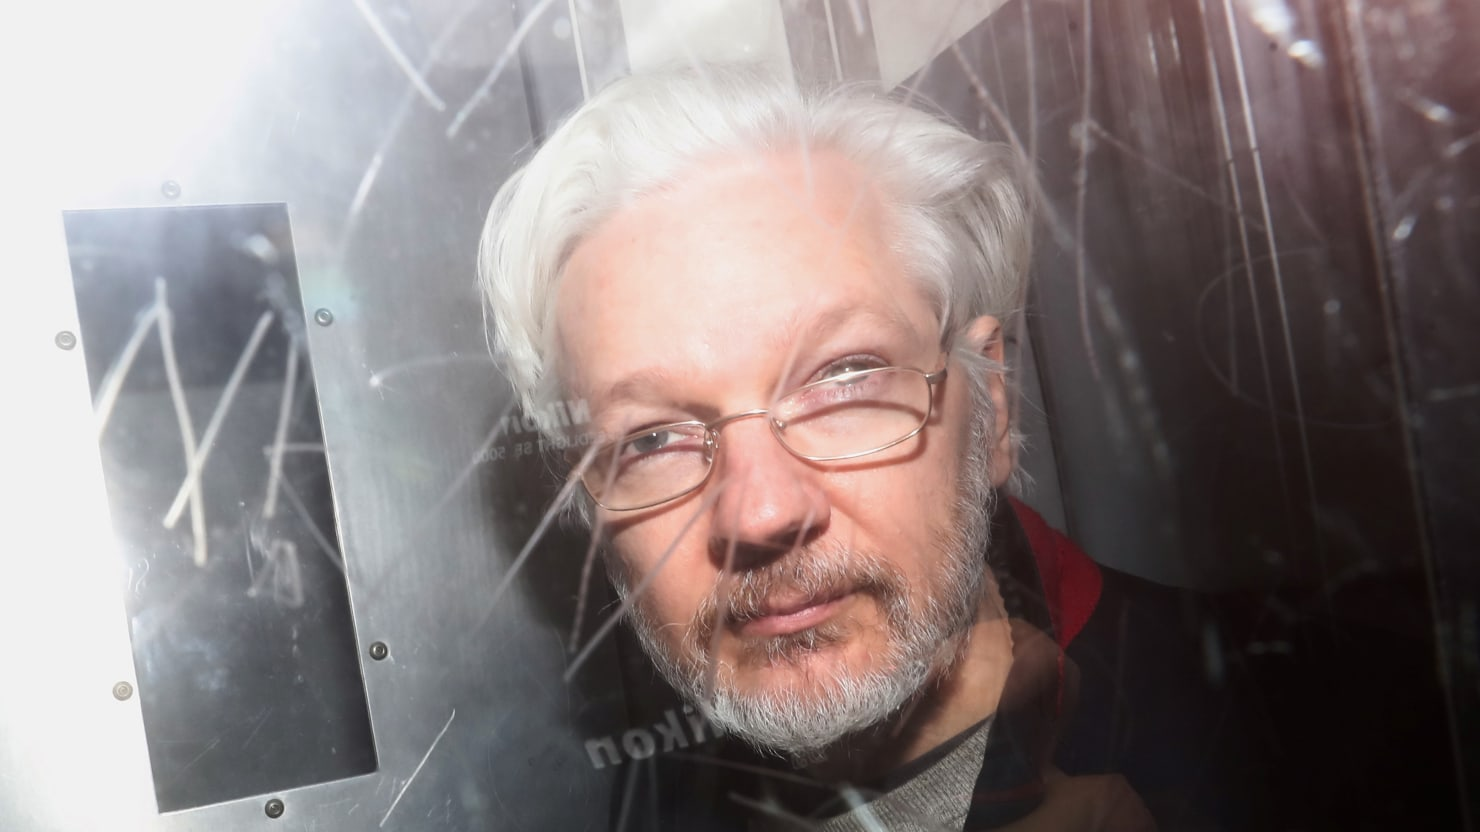 Current Status: Trump Offered Assange Pardon if He Covered Up Russian Hack, WikiLeaks Founder's Lawyer Claims